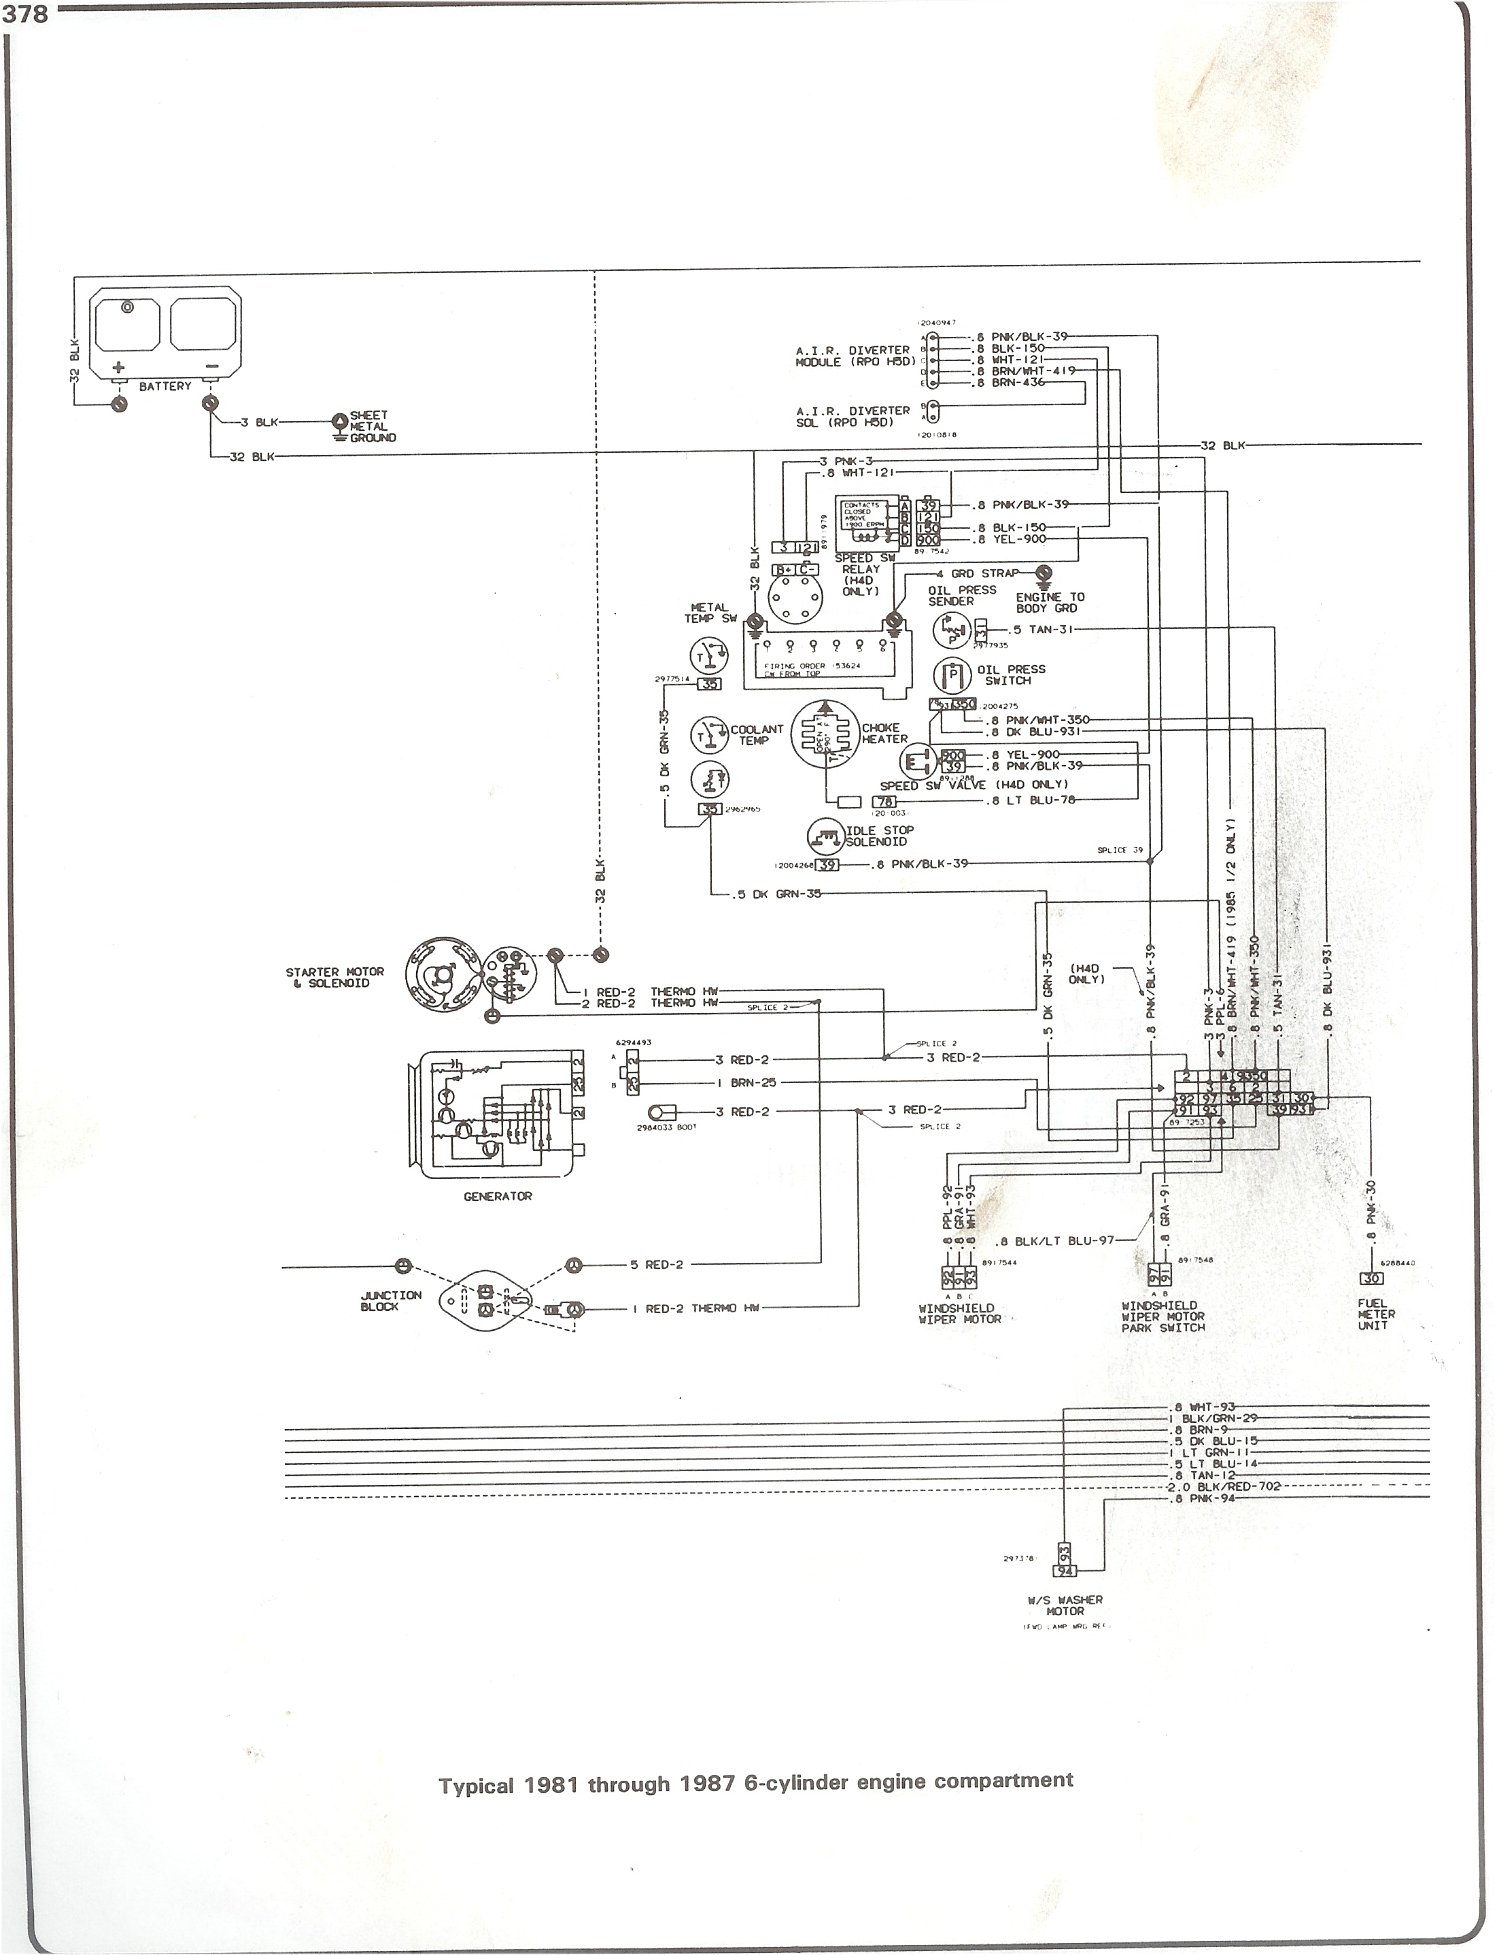 [WRG-9423] 1986 Chevy 454 Stock Engine Belt Diagram Wiring